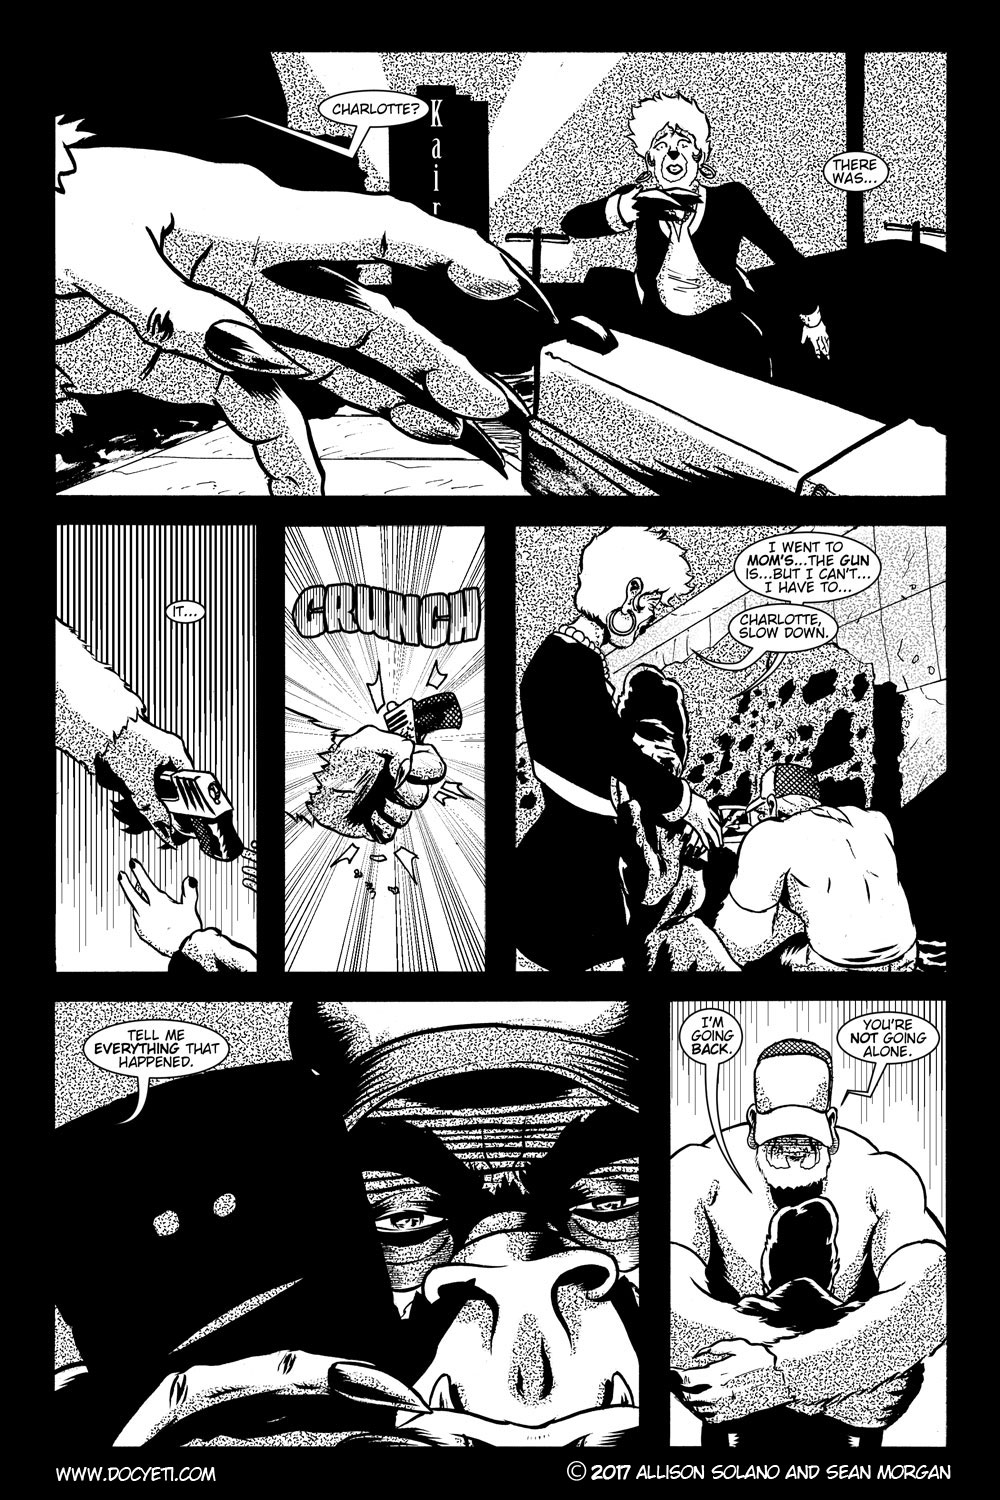 This Yeti for Hire! or the Yeti with the Lace Kerchief! Issue 2 pg.15